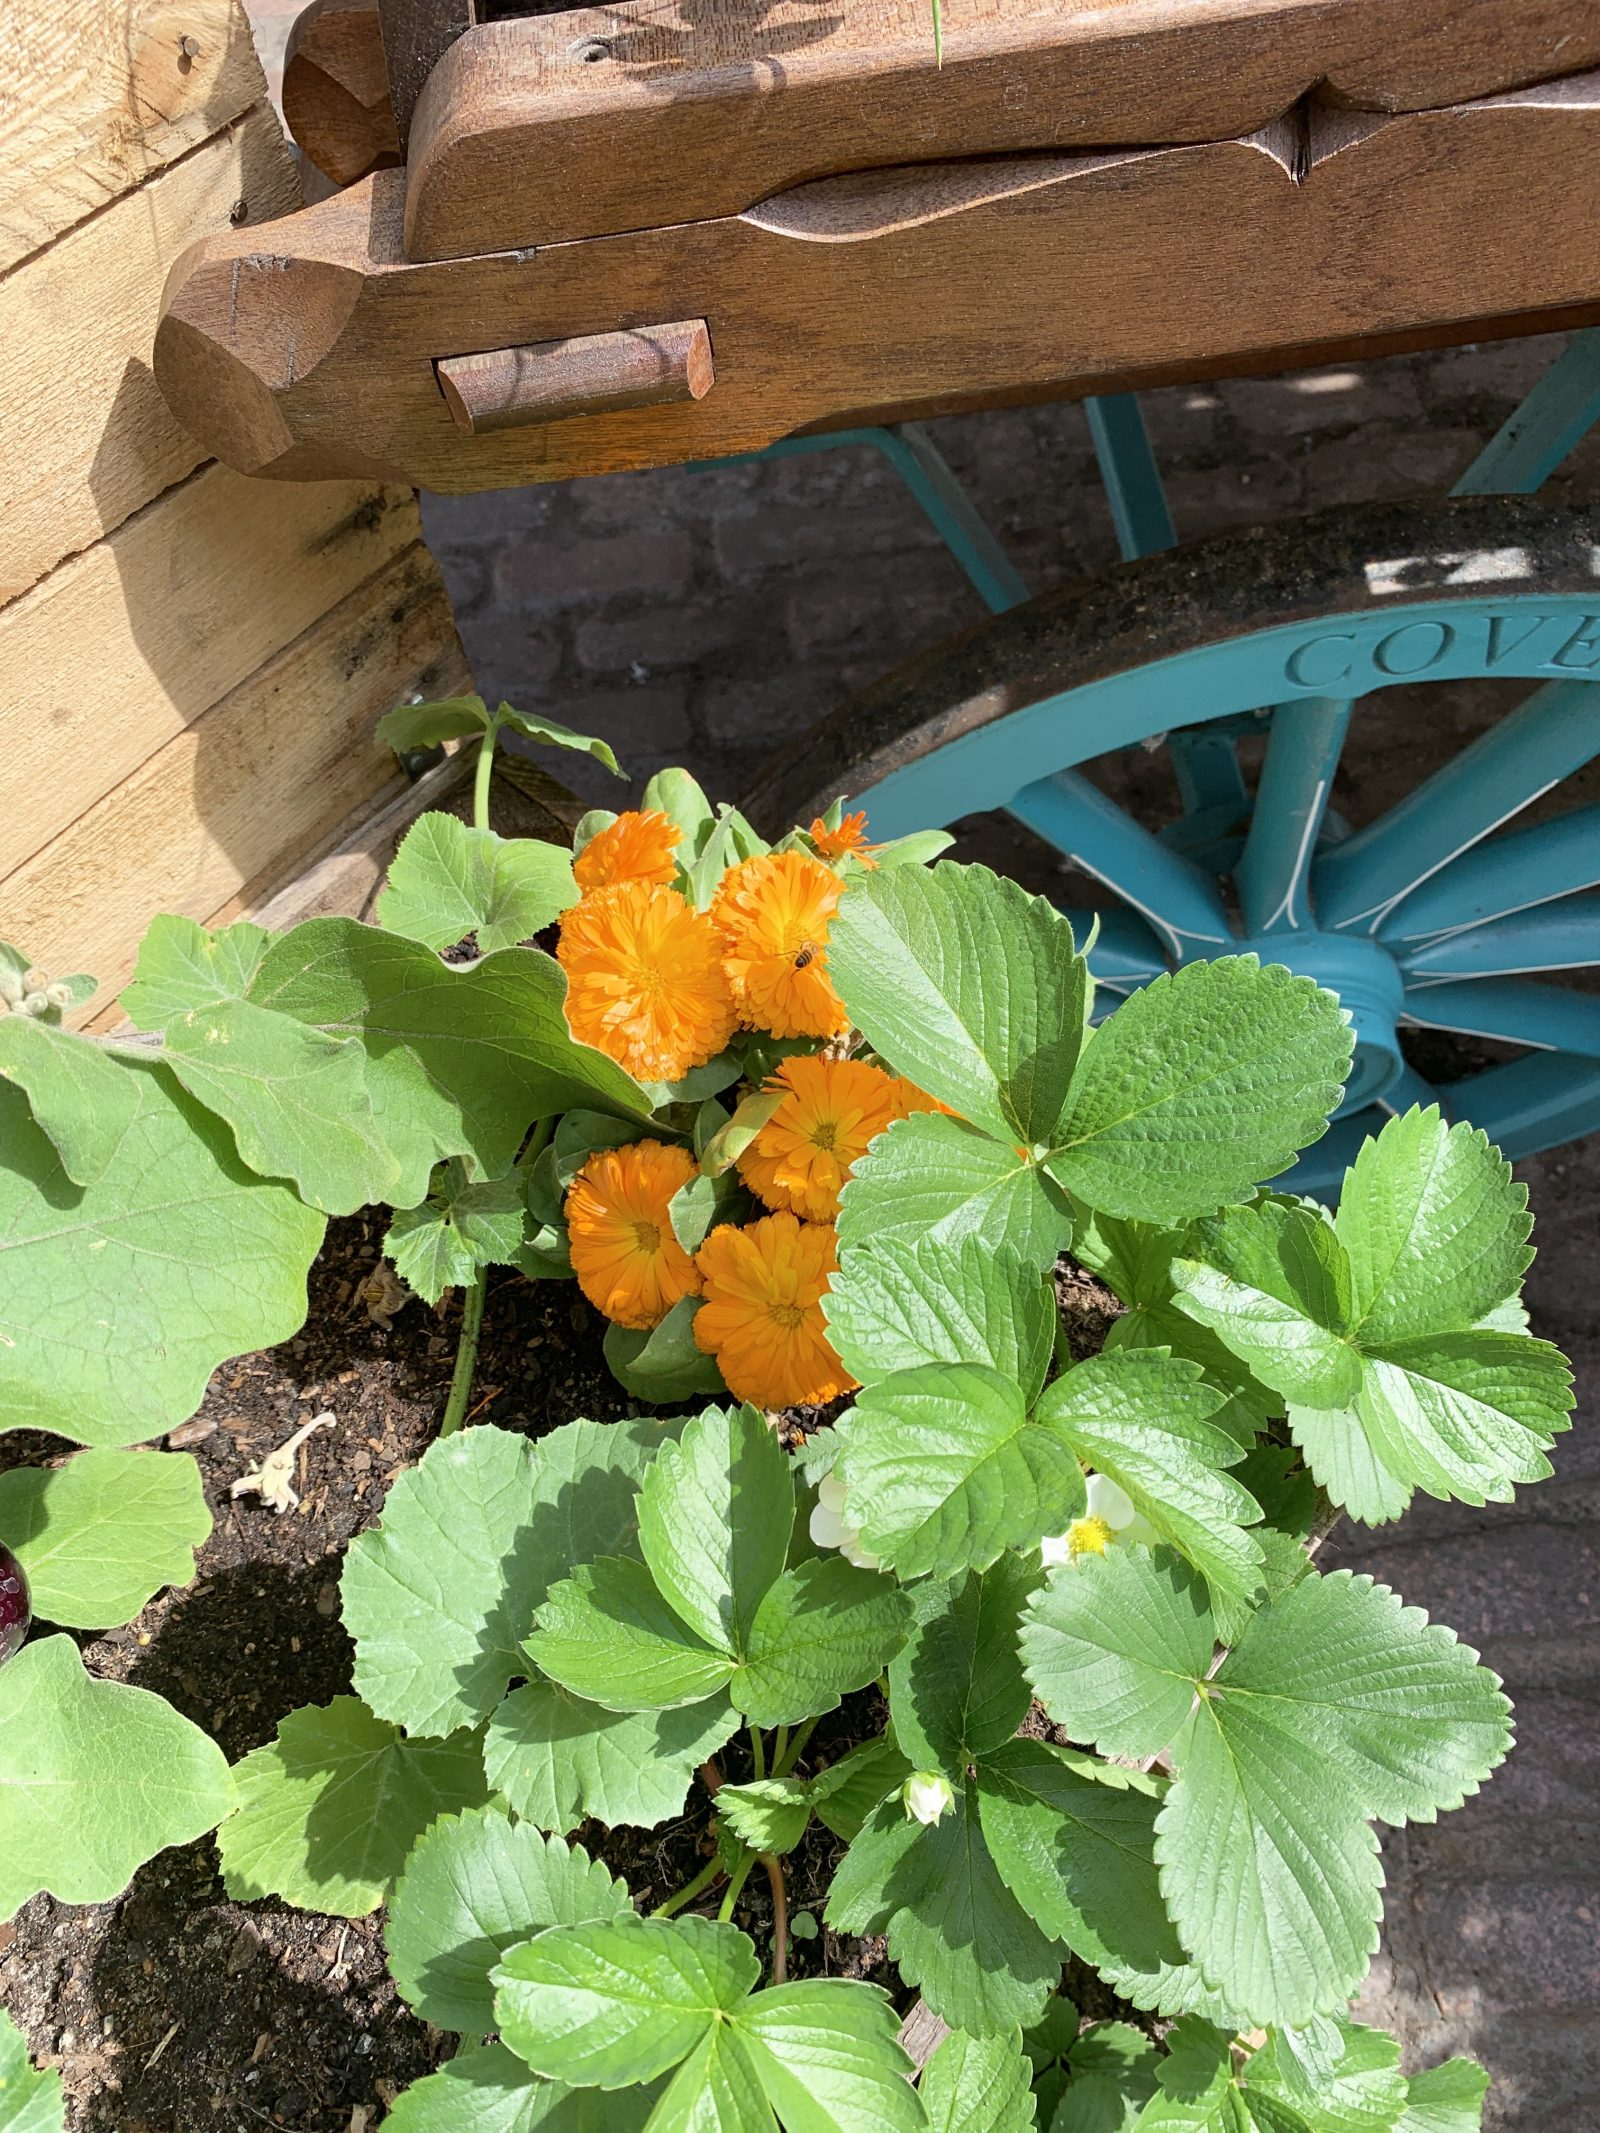 Crate Gardening for Small Spaces Calendula With Strawberry Plants #Garden #Gardening #SmallSpace #SmallSpaceGardening #ContainerGardening #VegetableGarden #HerbGarden #PorchGarden #PatioGarden